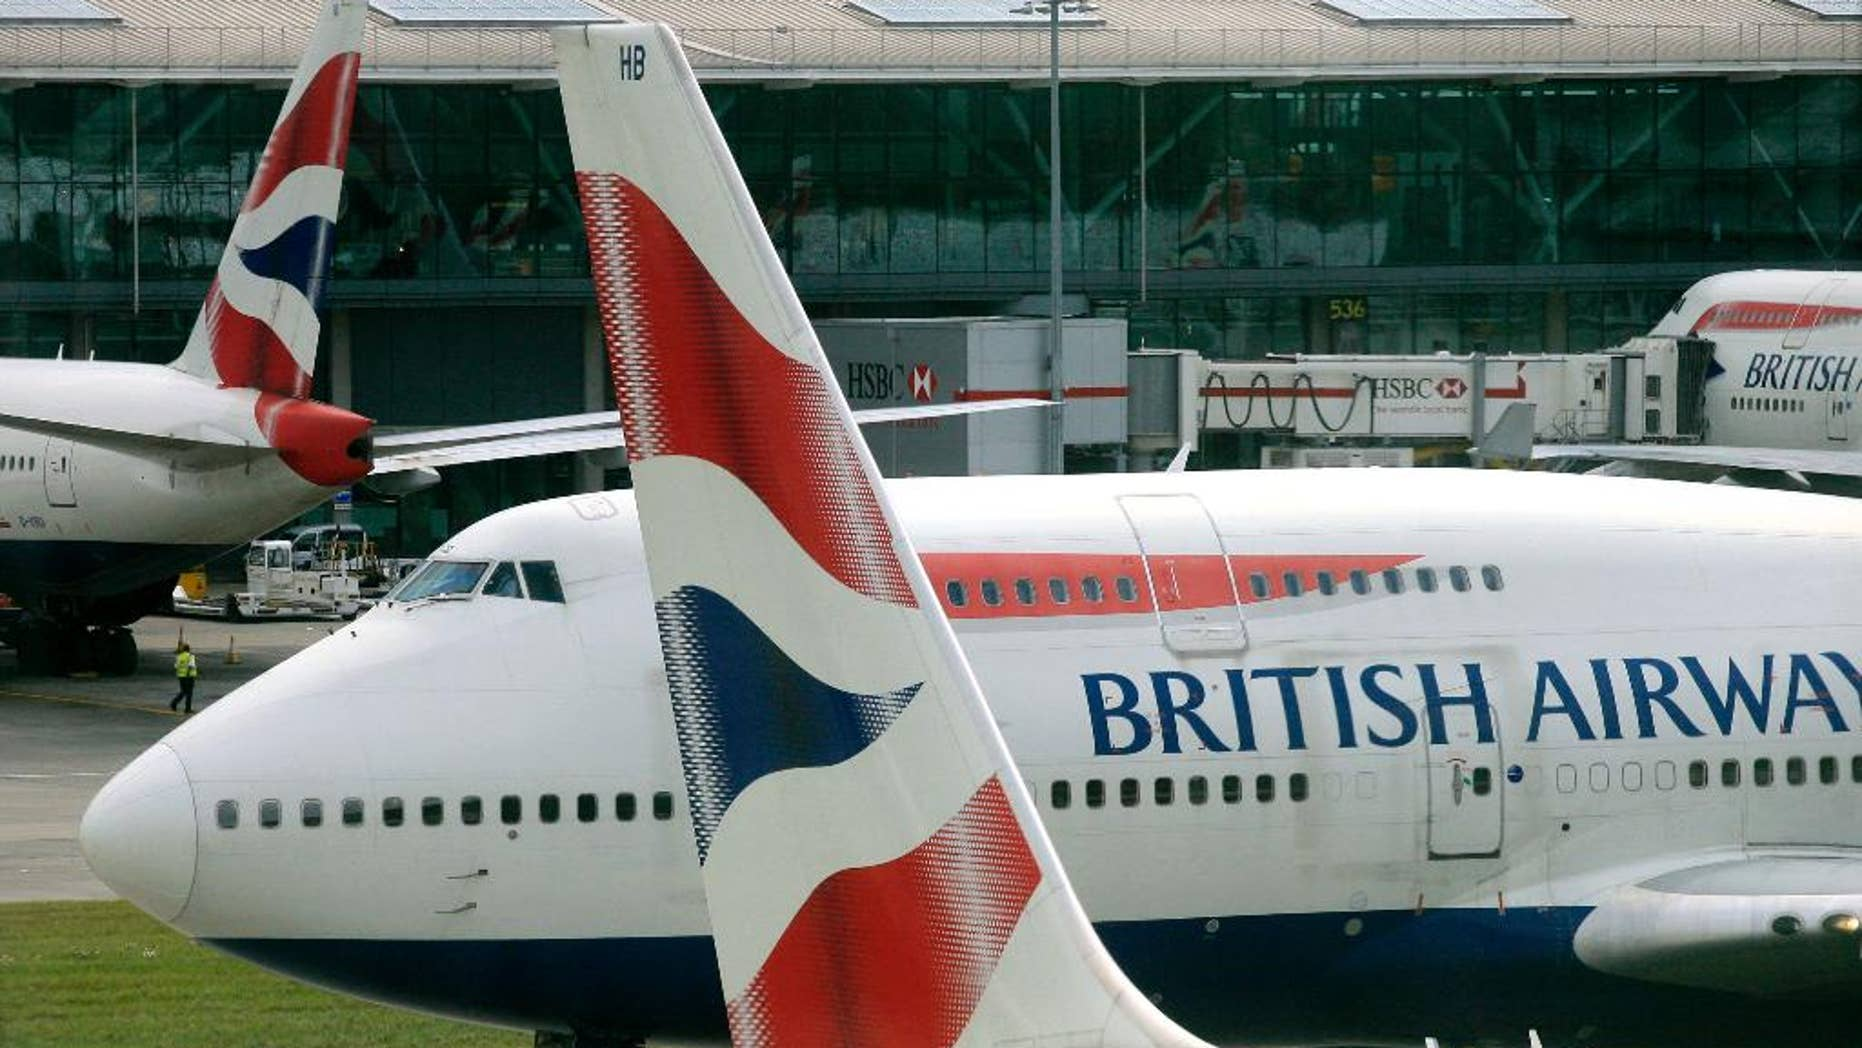 FILE - In this Sunday, Aug. 2, 2009 file photo, a British Airways Boeing 747 taxis away from Terminal 5 at London's Heathrow Airport. Britain's Airports Commission unanimously recommended the construction of a third runway at London's Heathrow Airport on Wednesday, July 1, 2015, in a long-awaited report on how to best expand the country's aviation capacity. The commission decided that Heathrow presented a stronger case for the British economy than rival Gatwick. But it stressed that Europe's largest airport needs to address air quality, noise and community concerns.(AP Photo/Mark Lennihan, file)